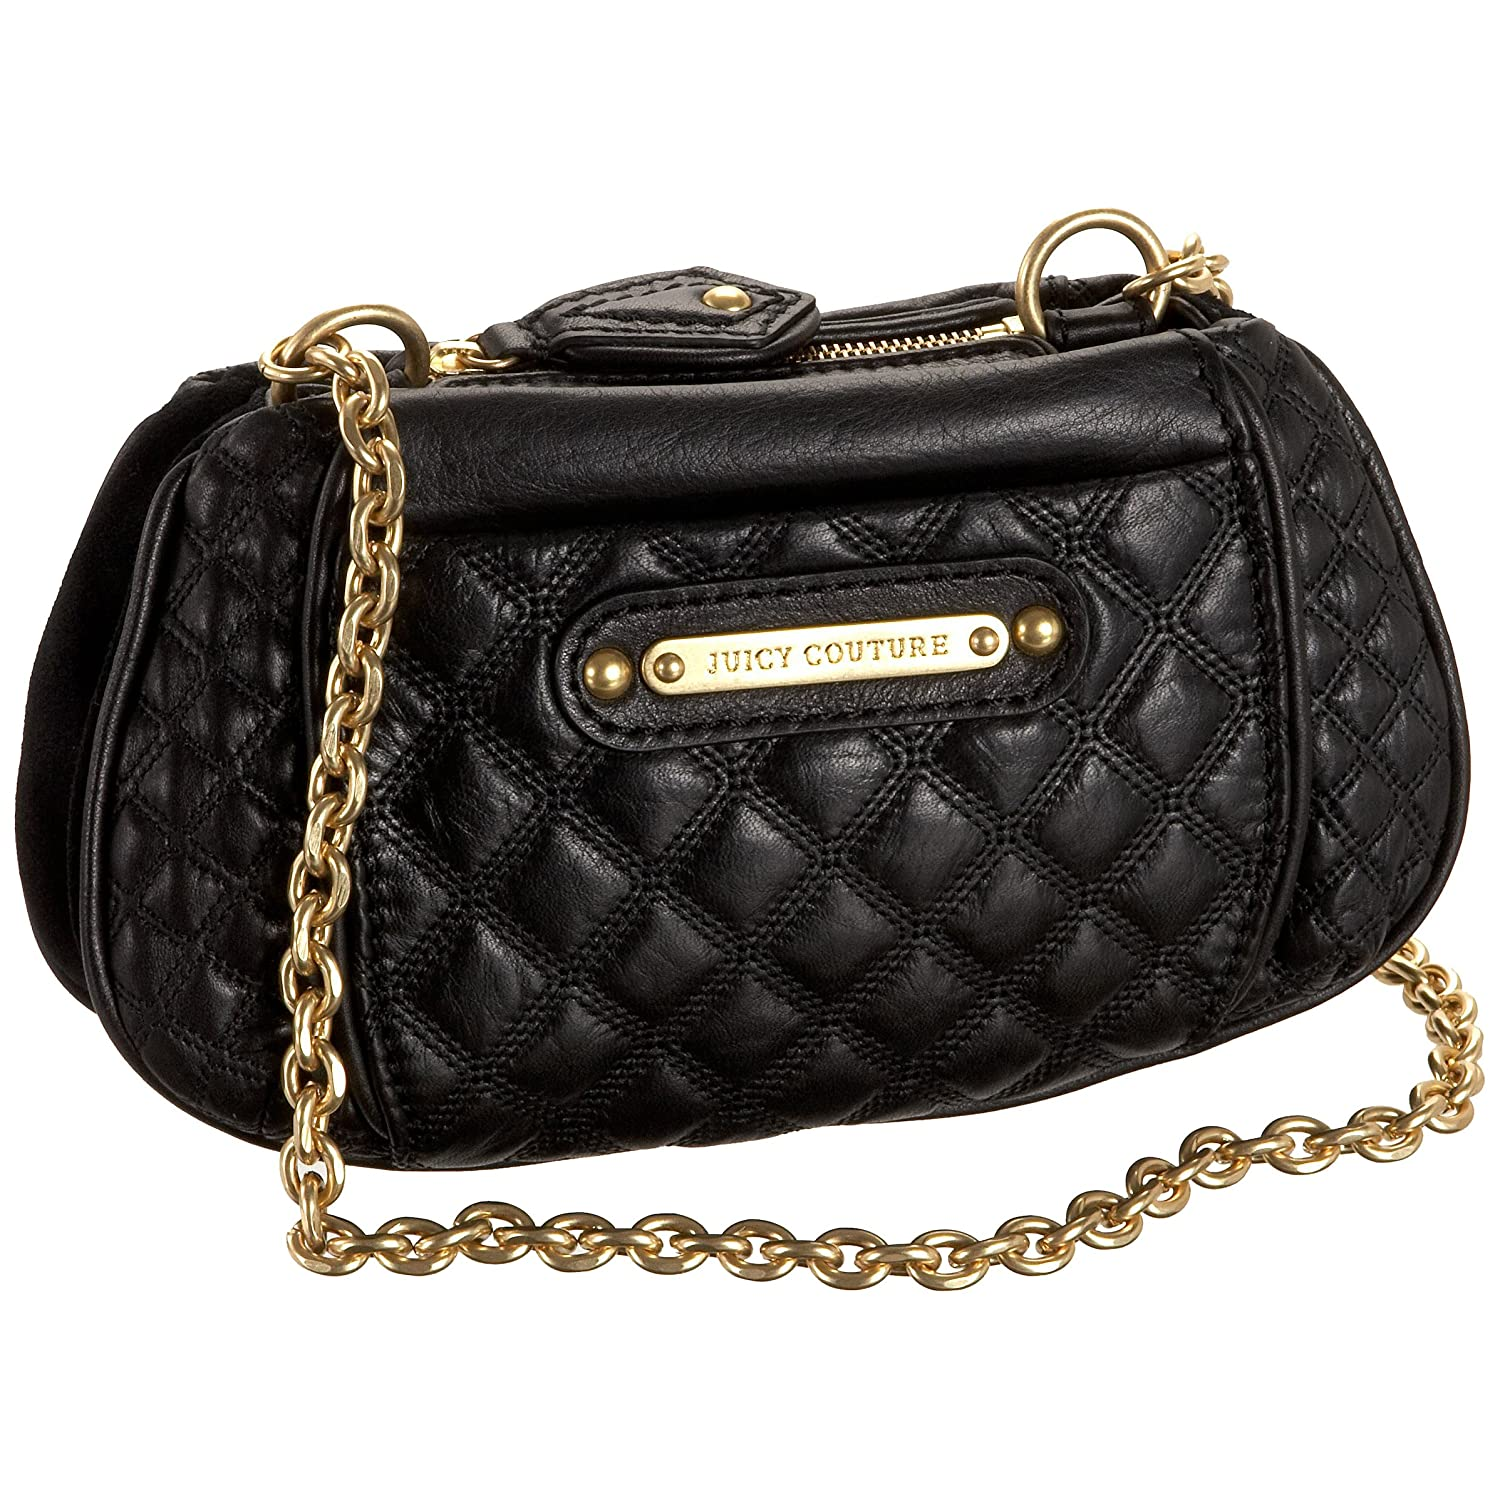 Juicy Couture Collection Quilted Leather Mini Cross-Body